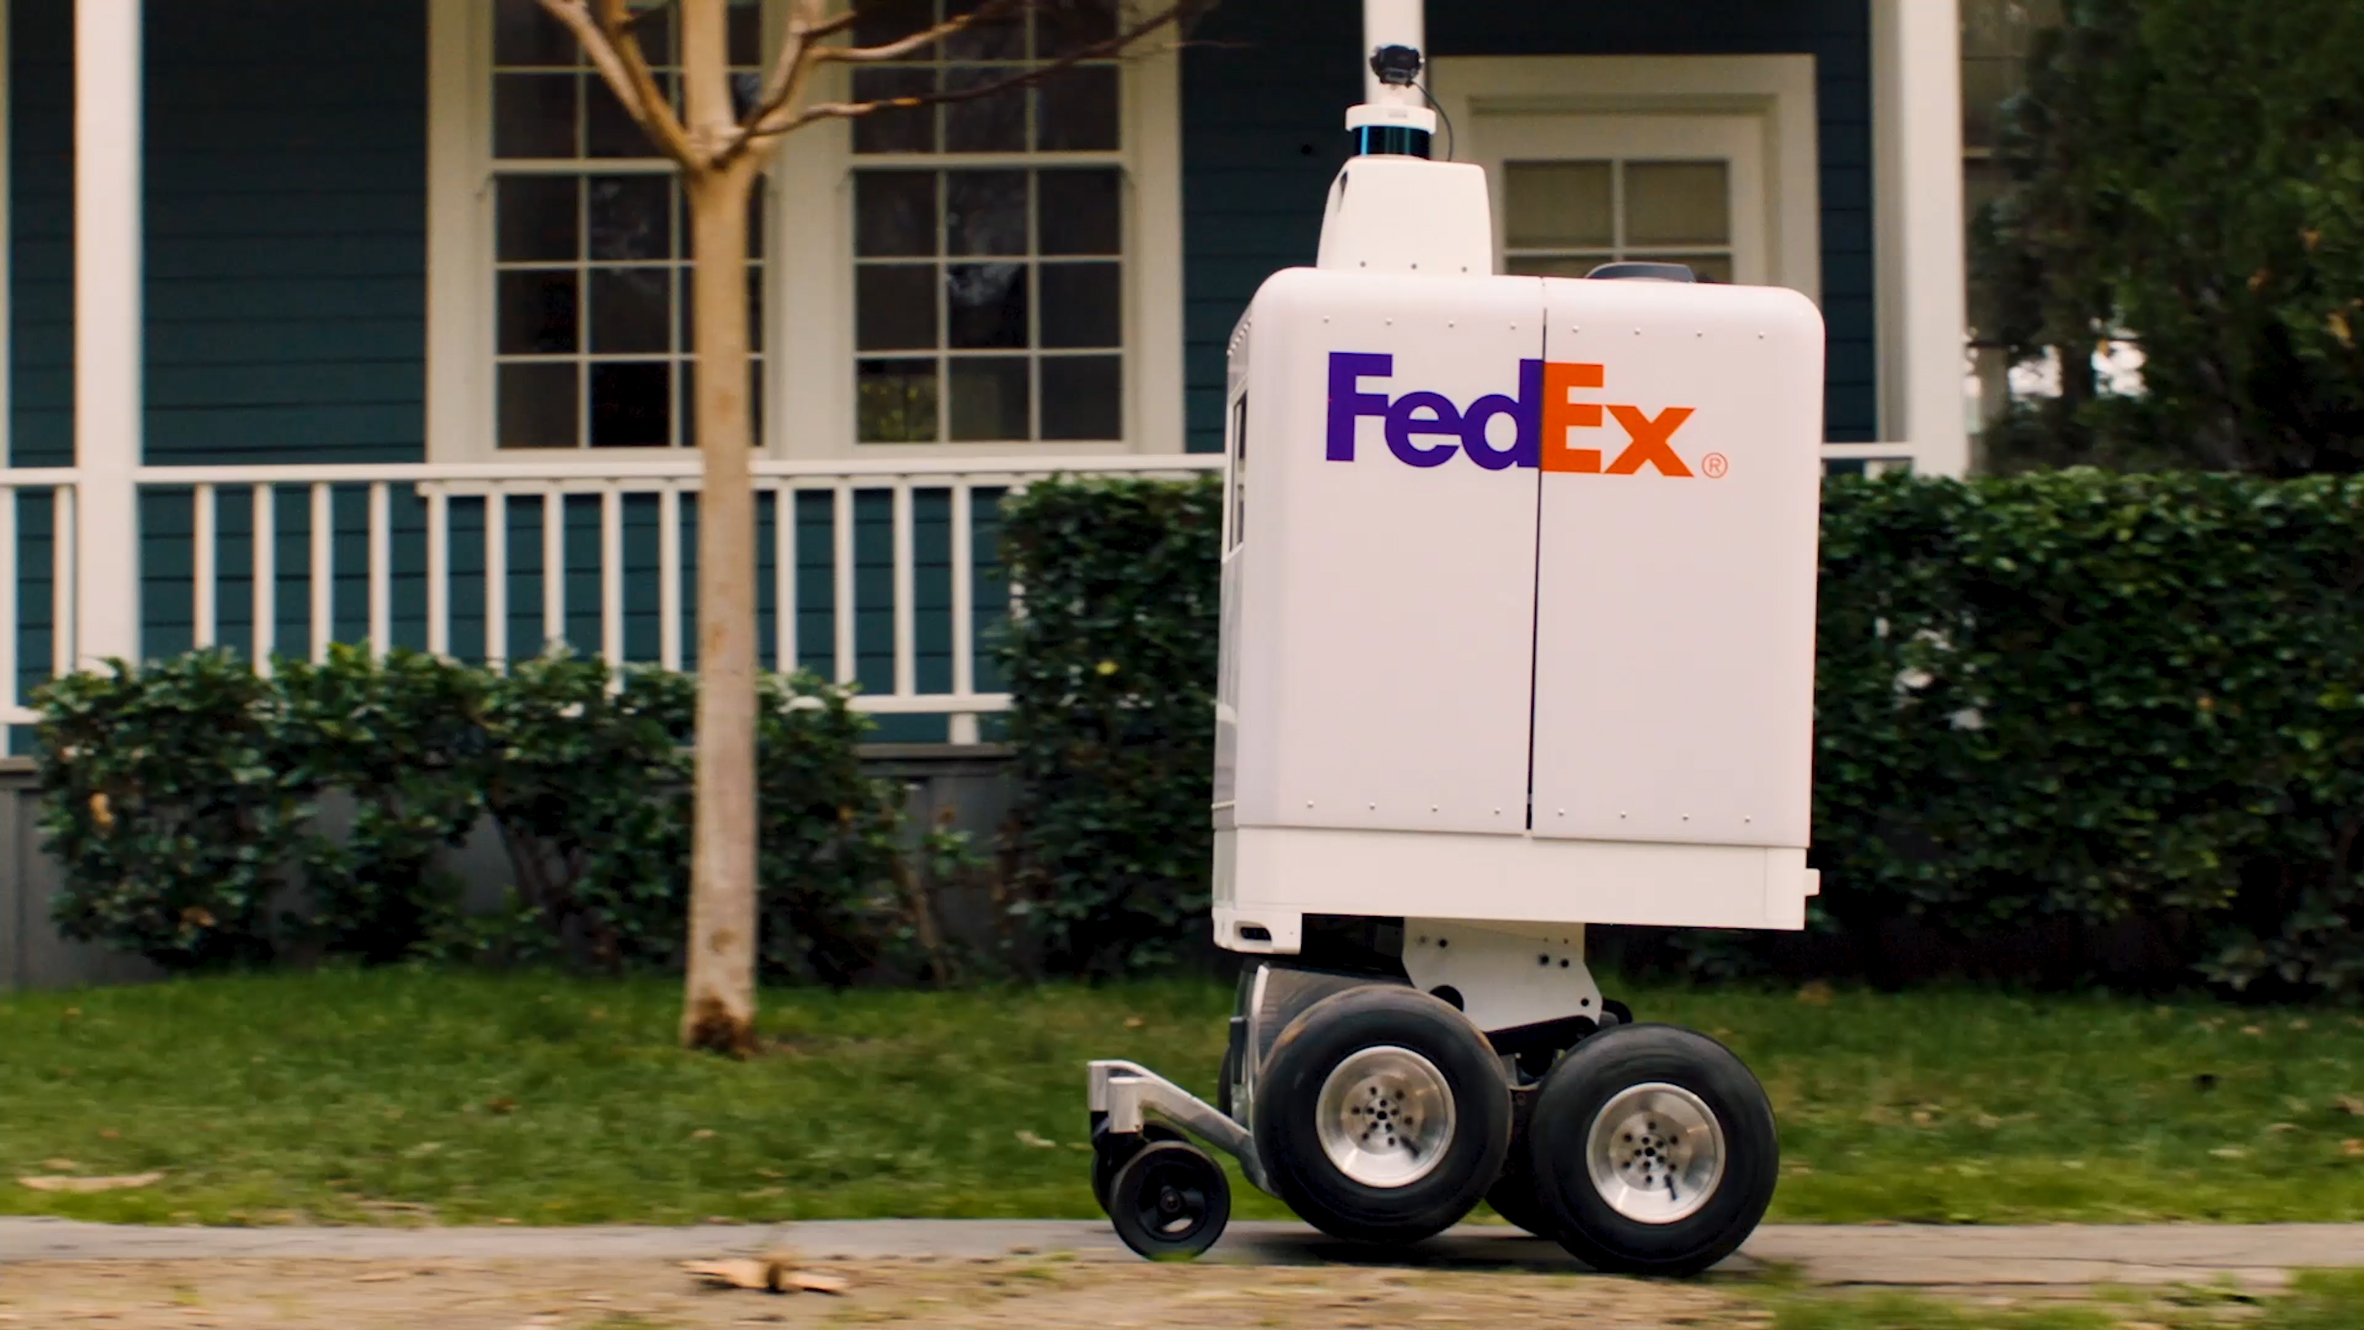 FedEx's delivery robot SameDay Bot delivers packages to your